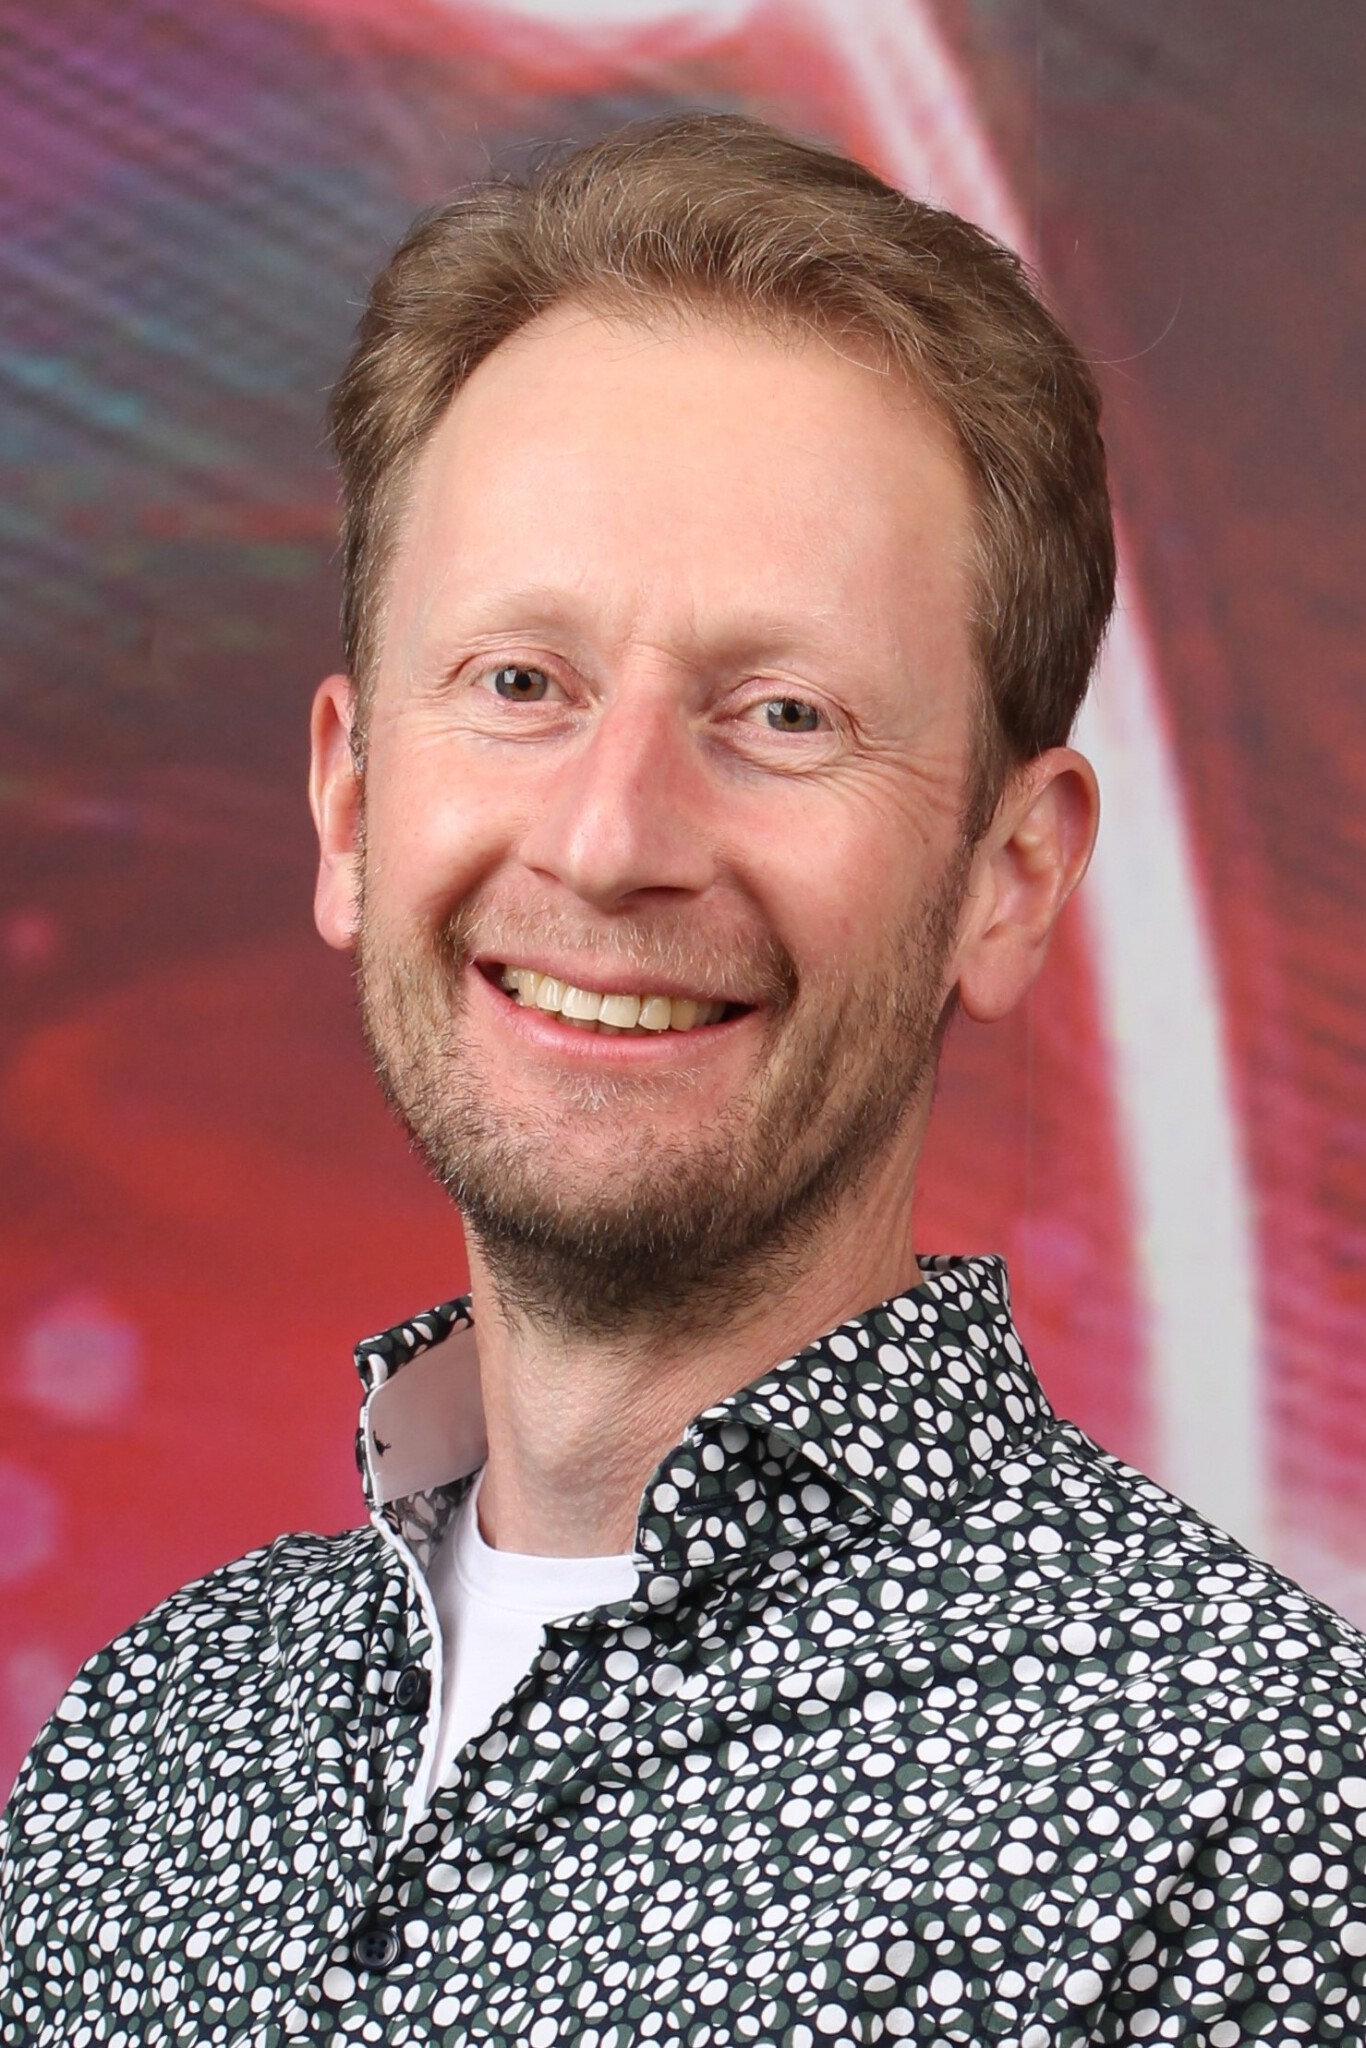 Profile picture of Dr Peter Maat head of Integrated Microwave Photonics group